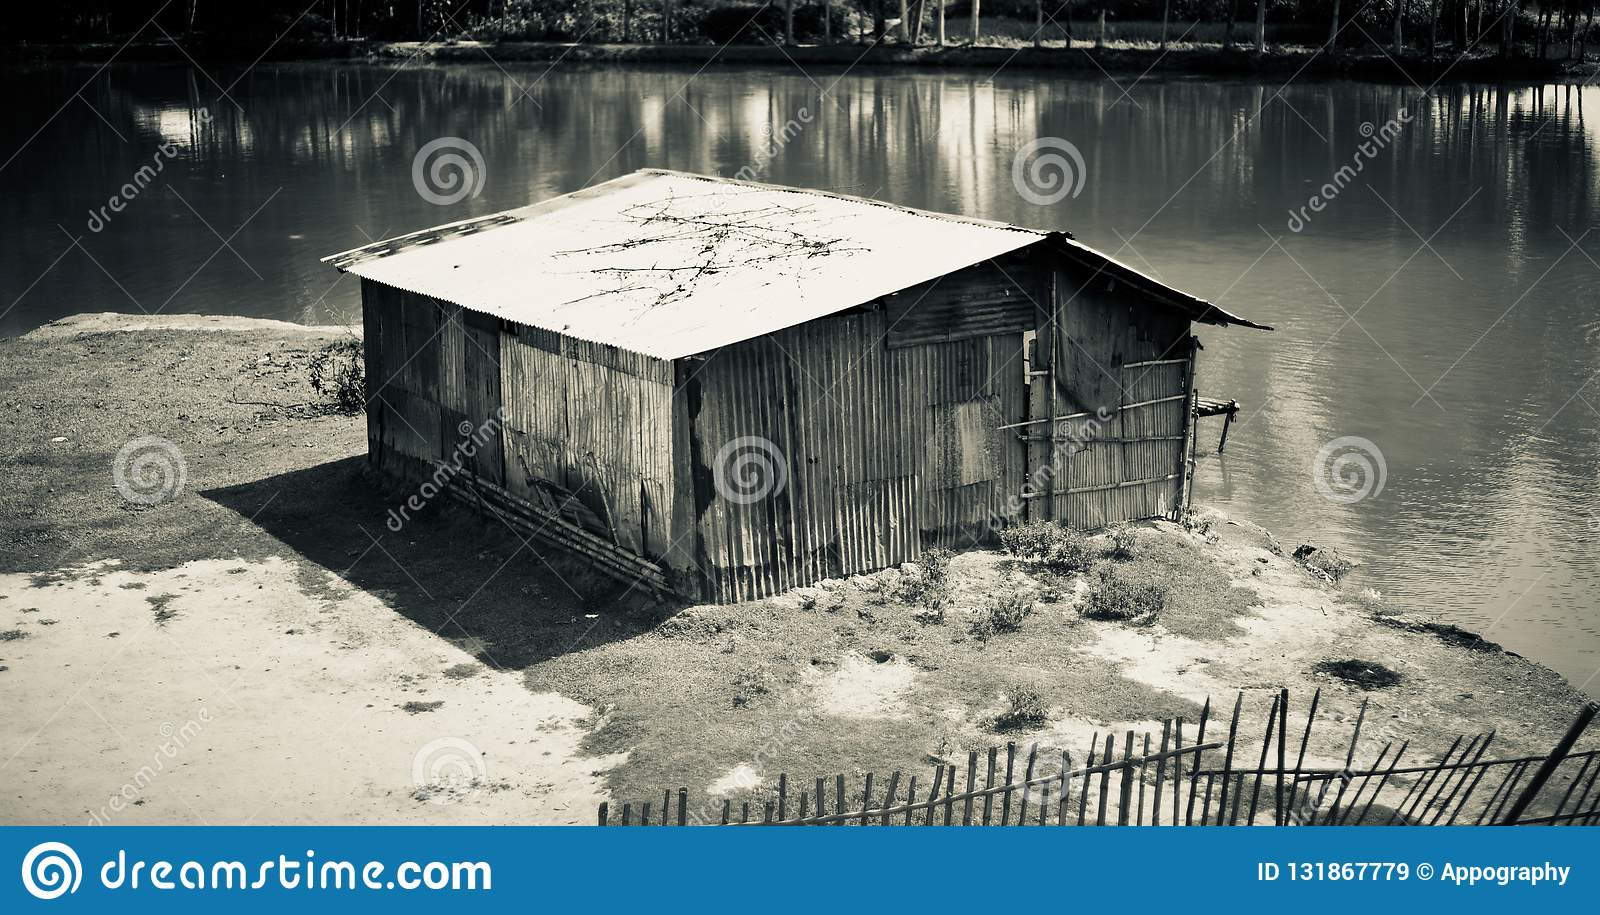 A small tin shed house unique photo